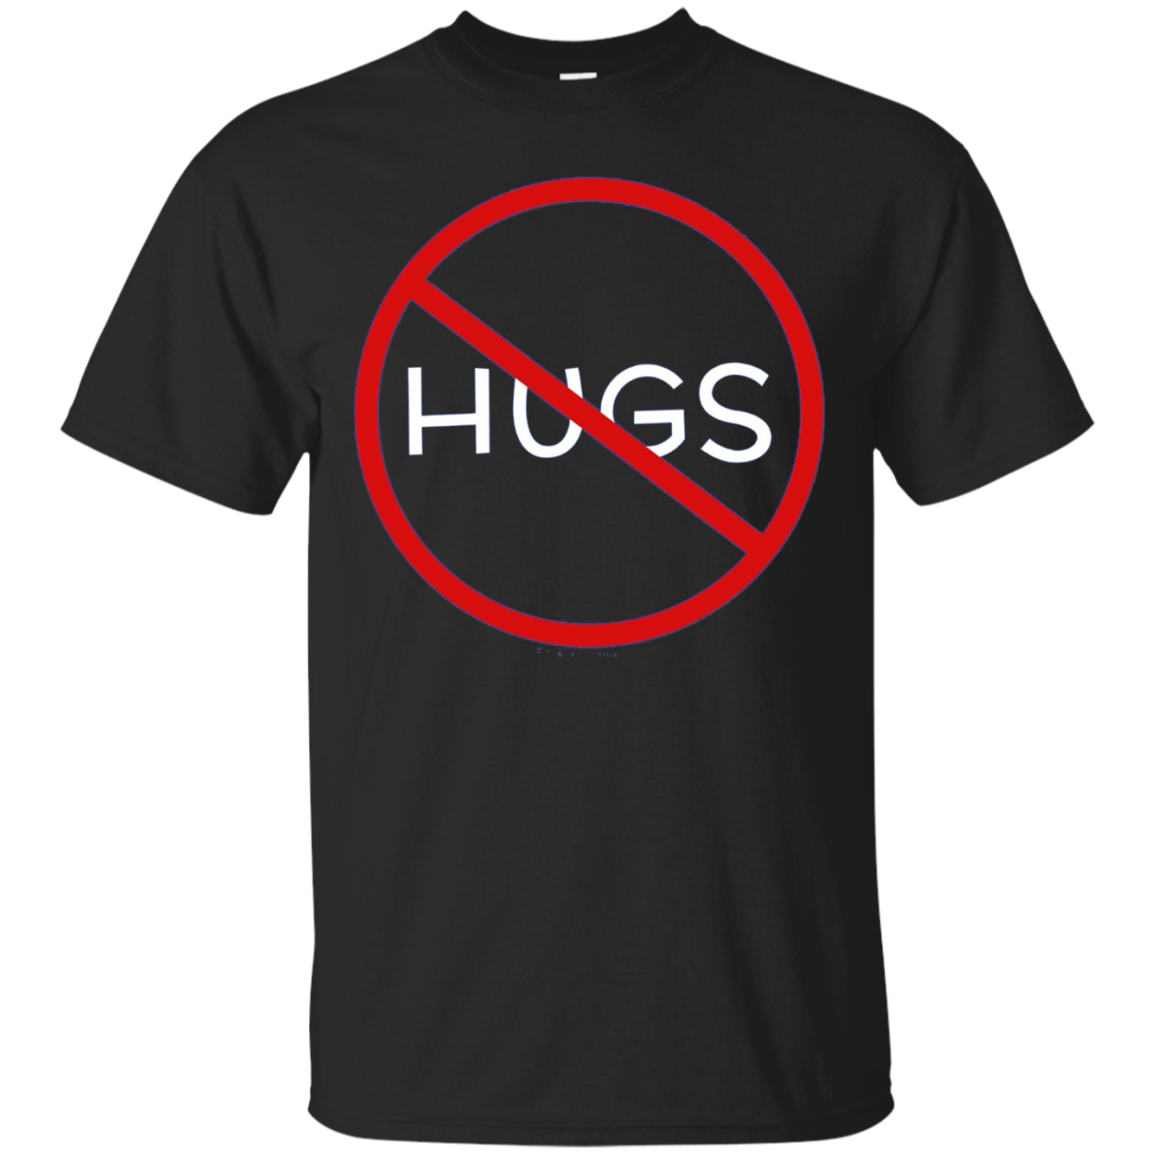 No Hugs Don't Touch Me Introvert Personal Space PSA Shirt